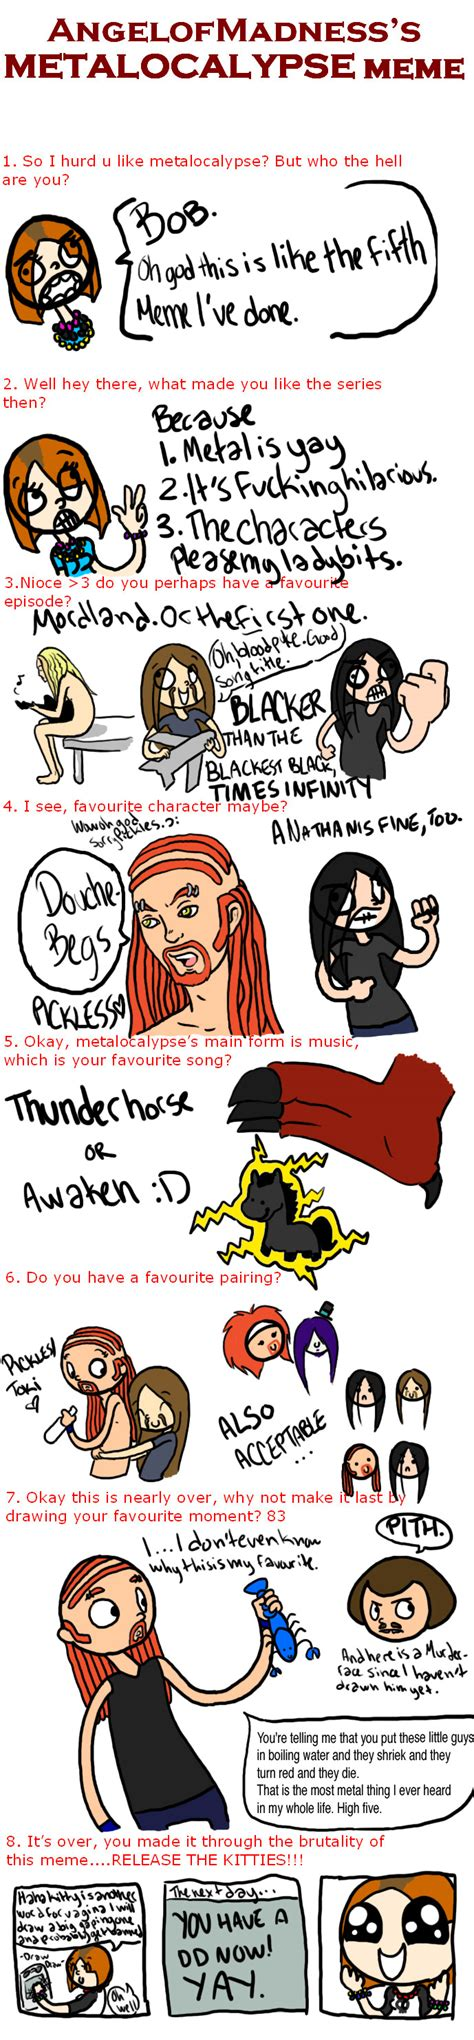 Metalocalypse Meme Metalocalypse Meme By Bobthedancingflea On Deviantart